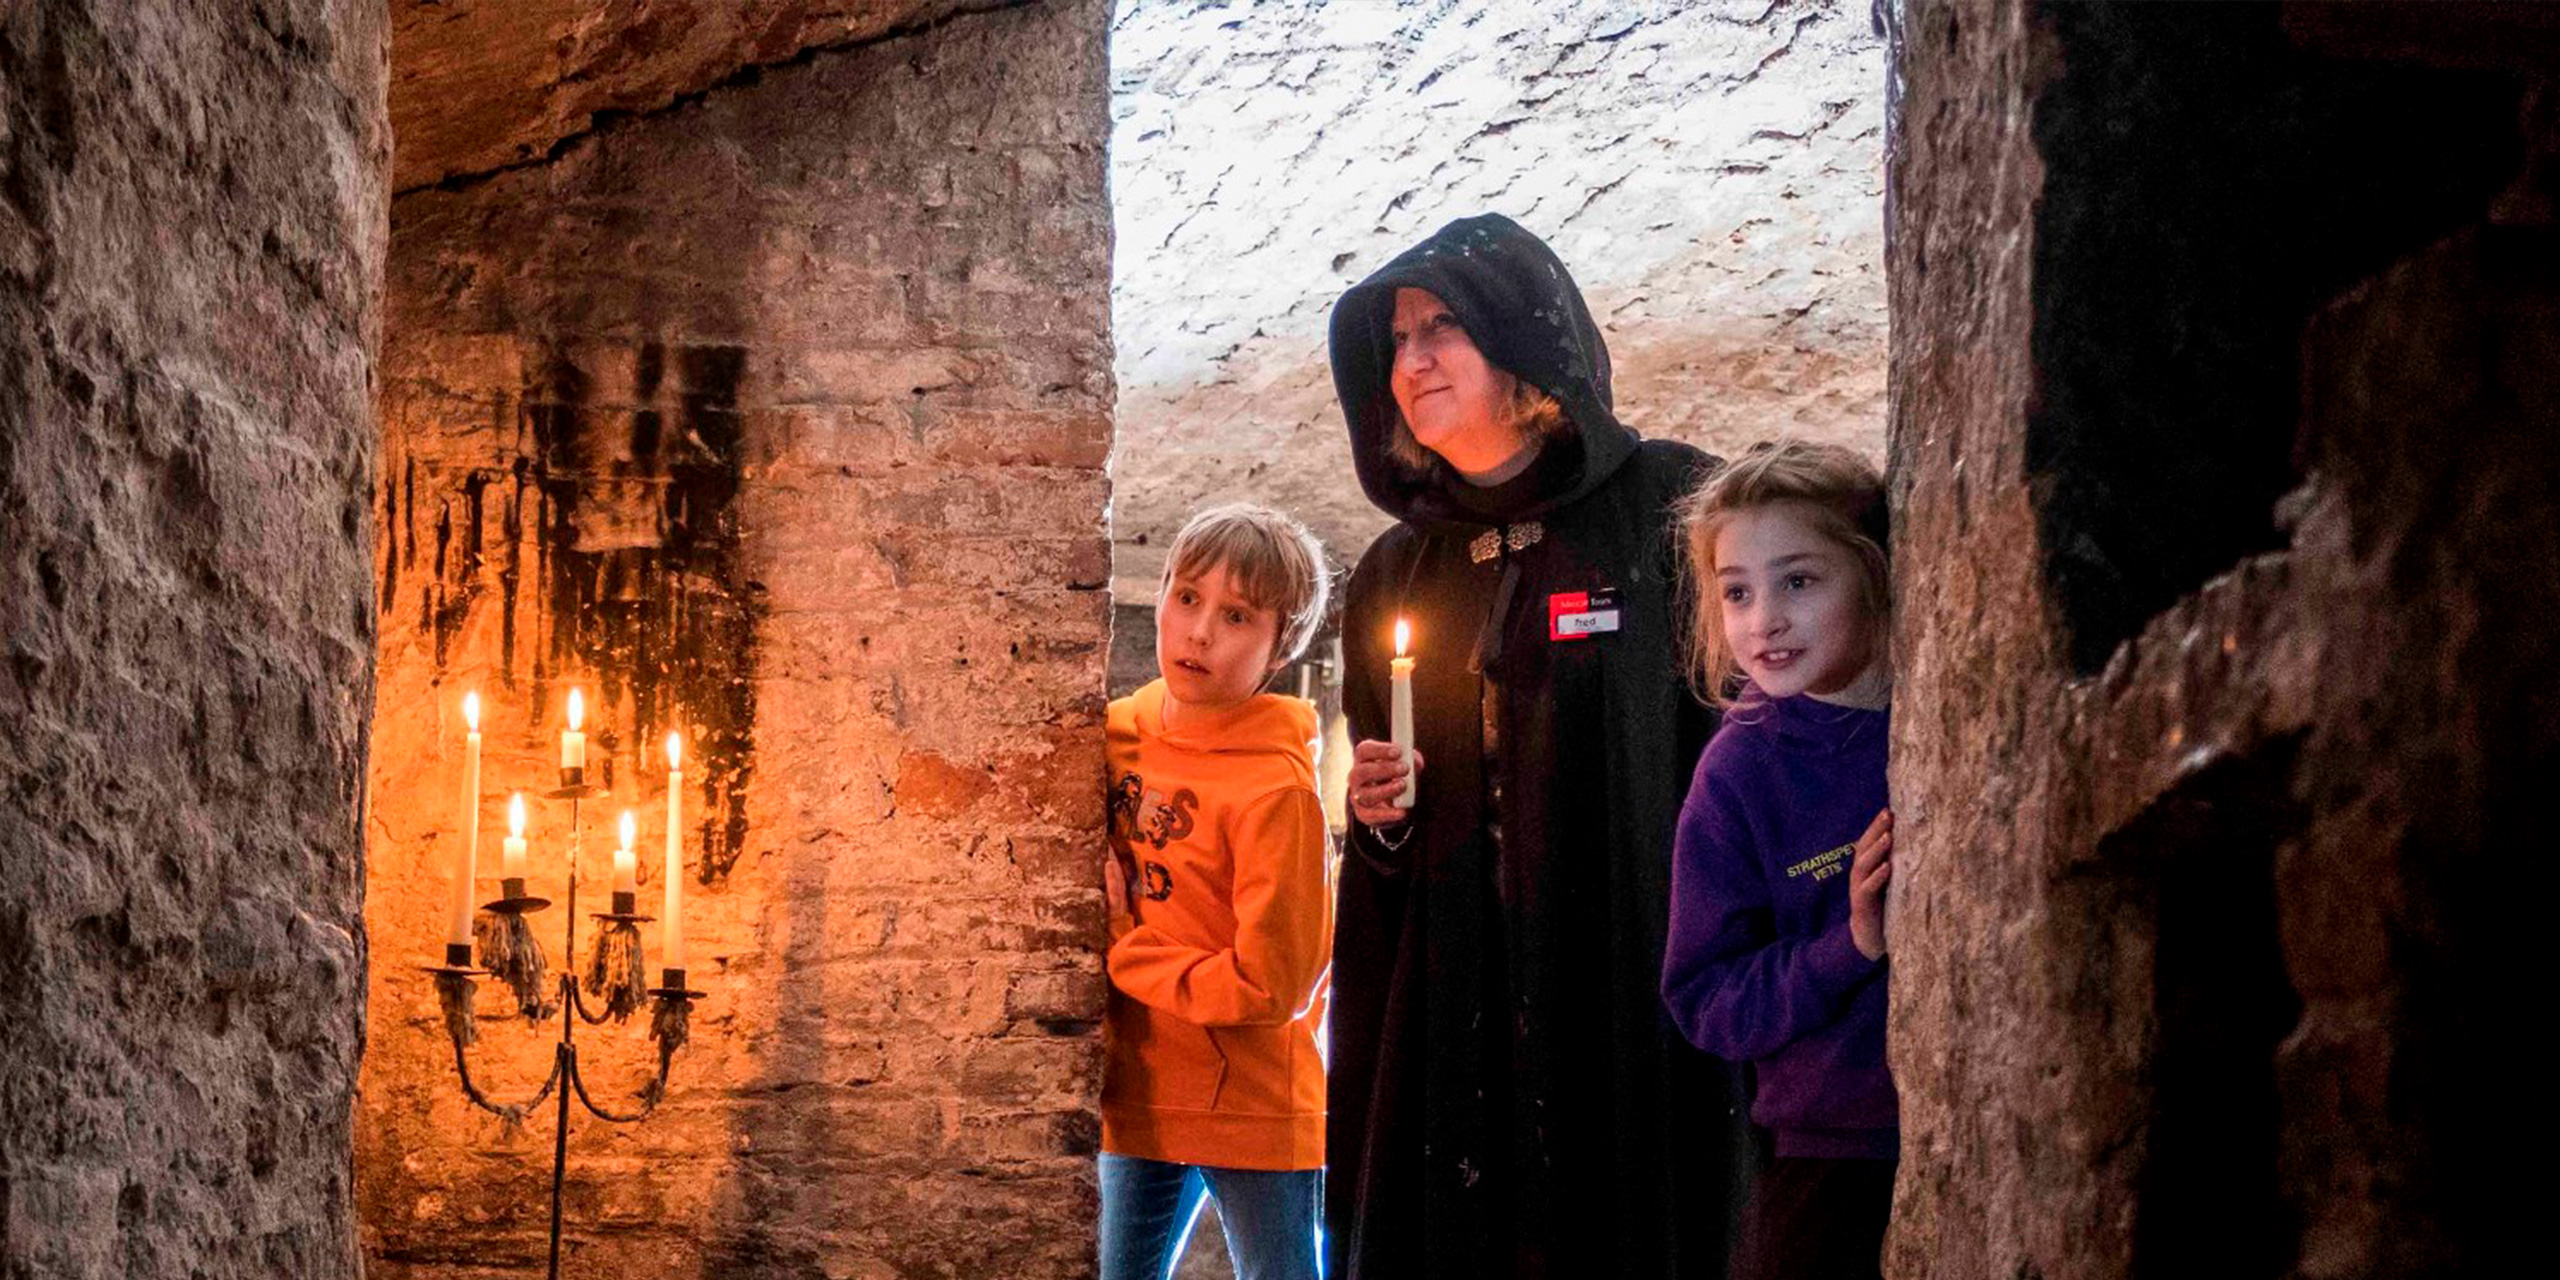 Gory Stories – The Kids' Tour; Courtesy of Gory Stories